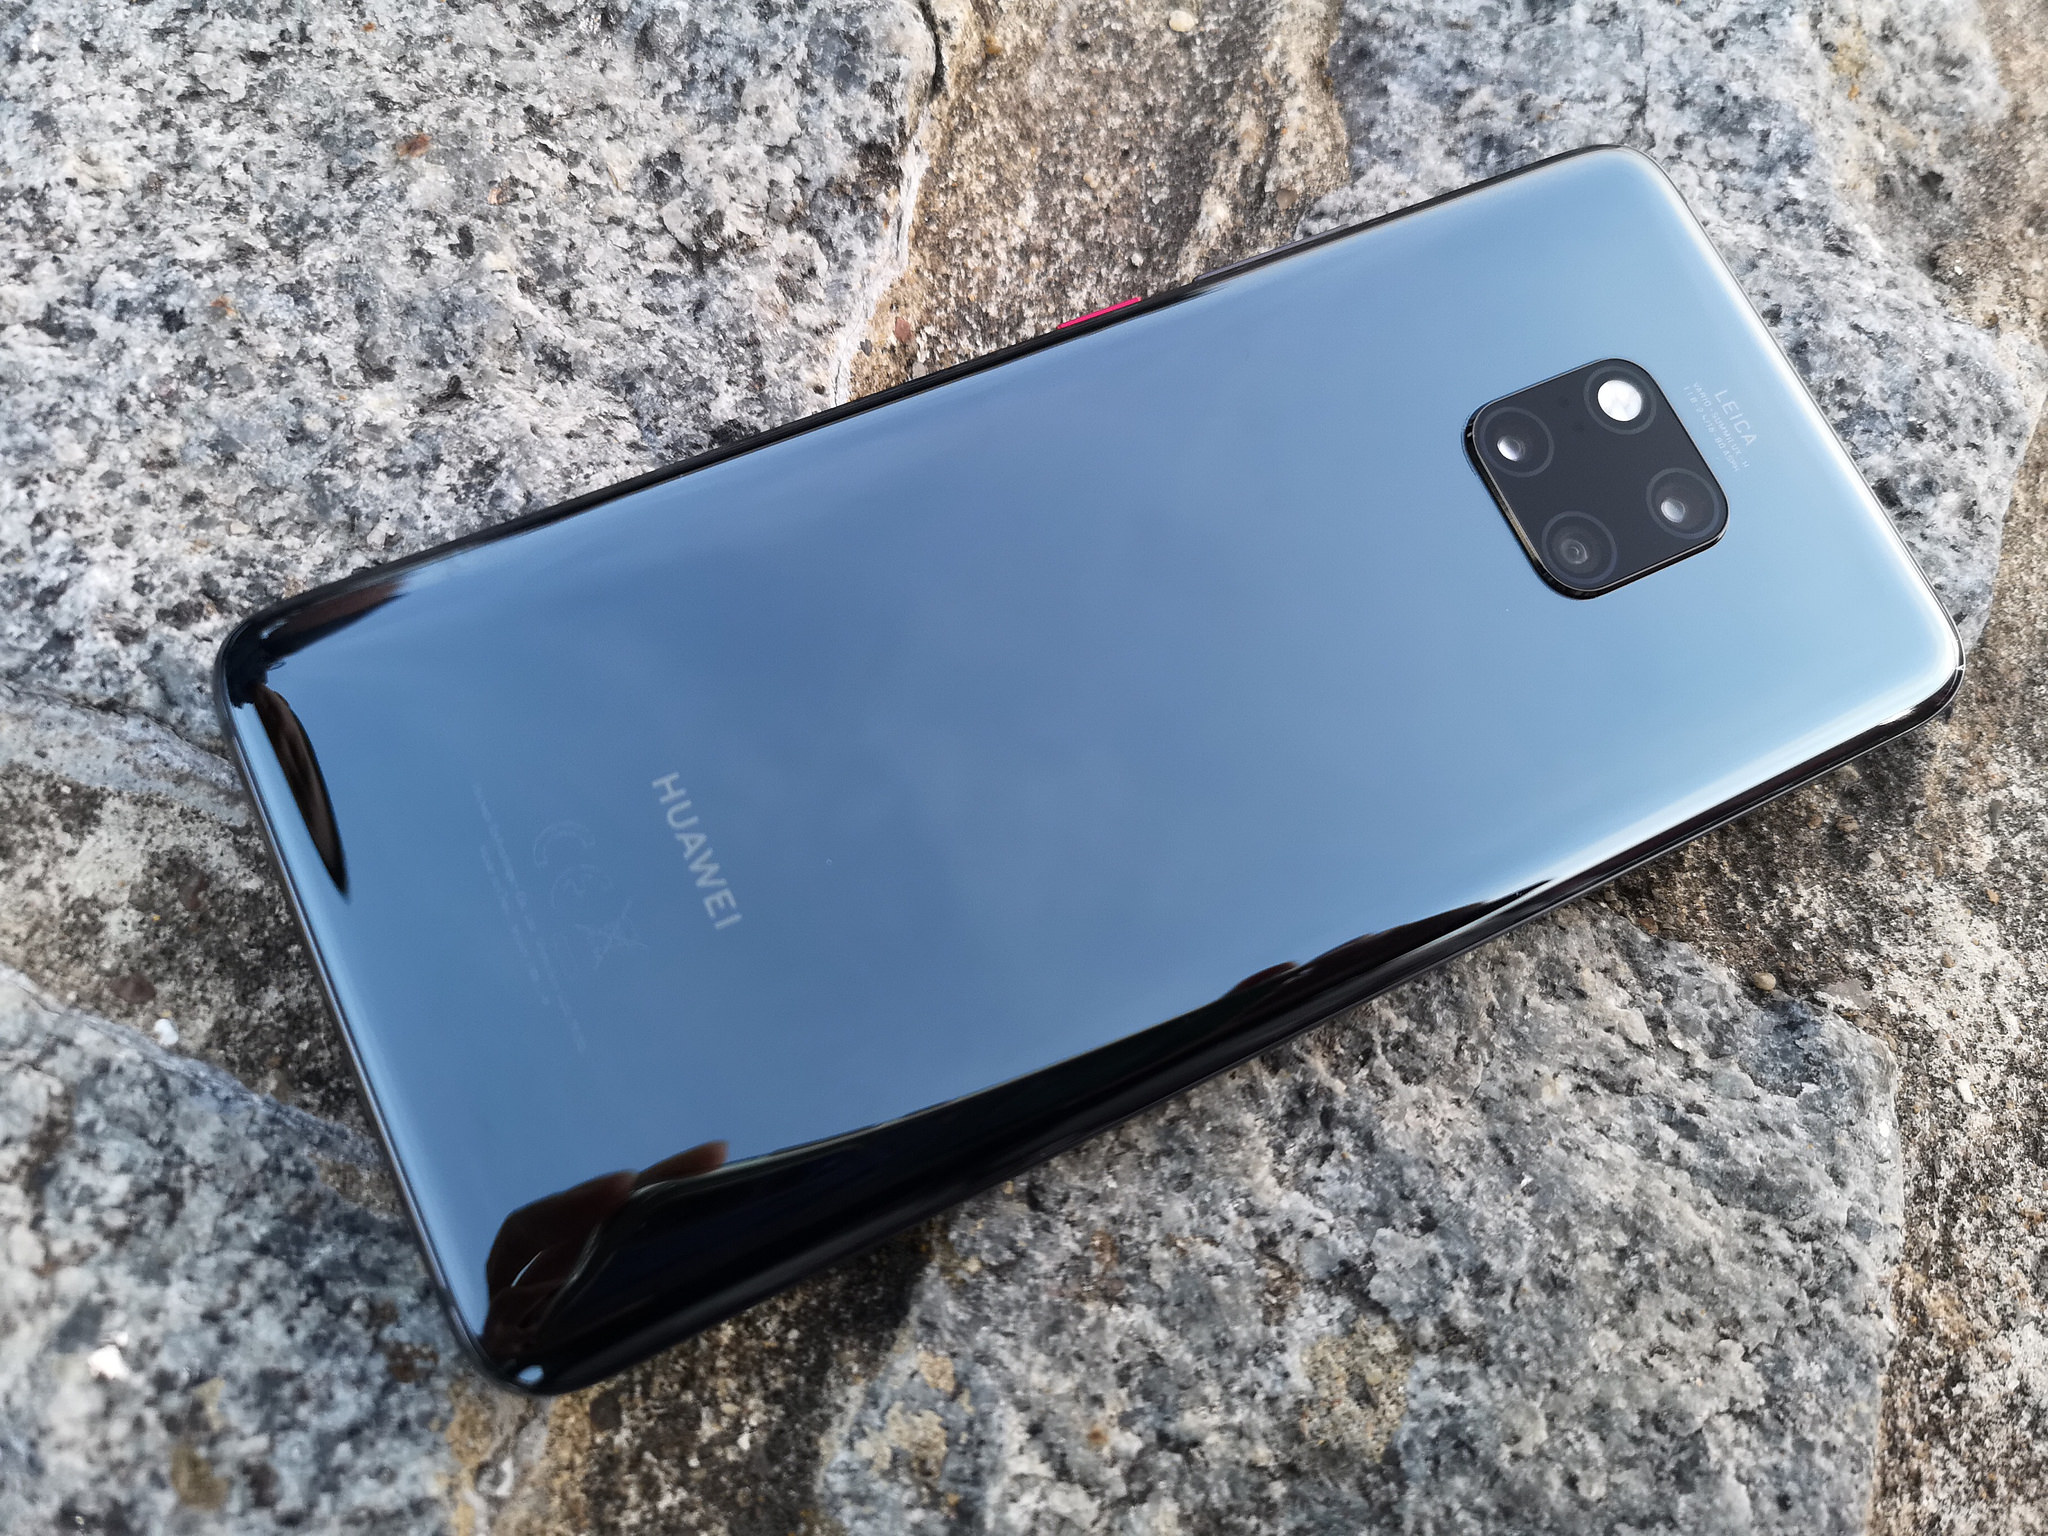 Huawei's latest Mate20 Pro sports Leica Ultra Wide Angle Lens, supports reverse wireless charging - Alvinology